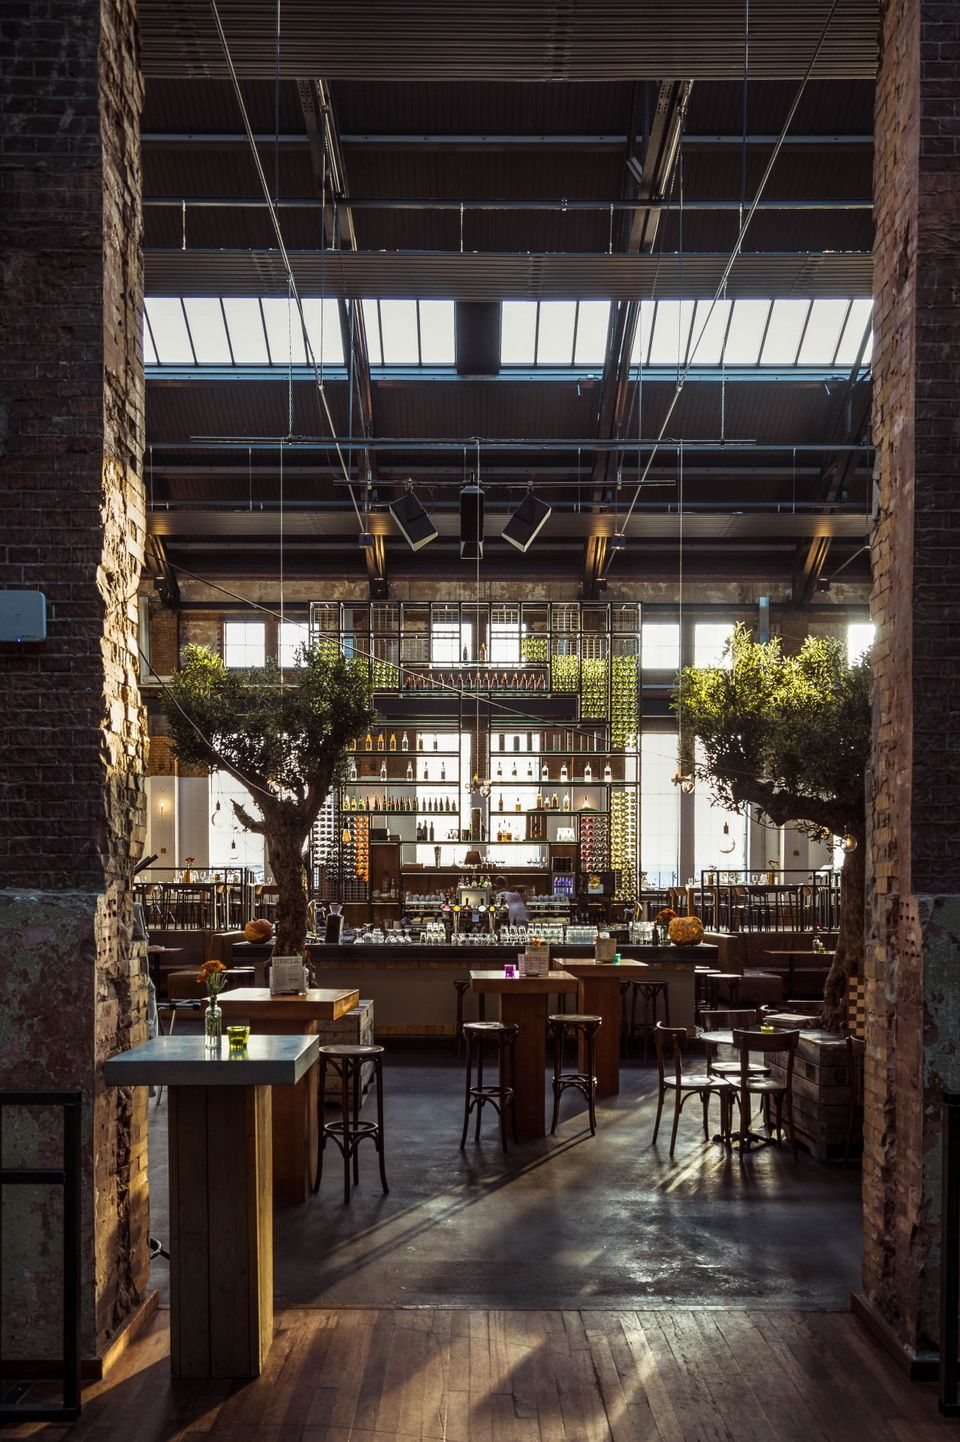 Restaurant And Bar With Brick Walls And High Exposed